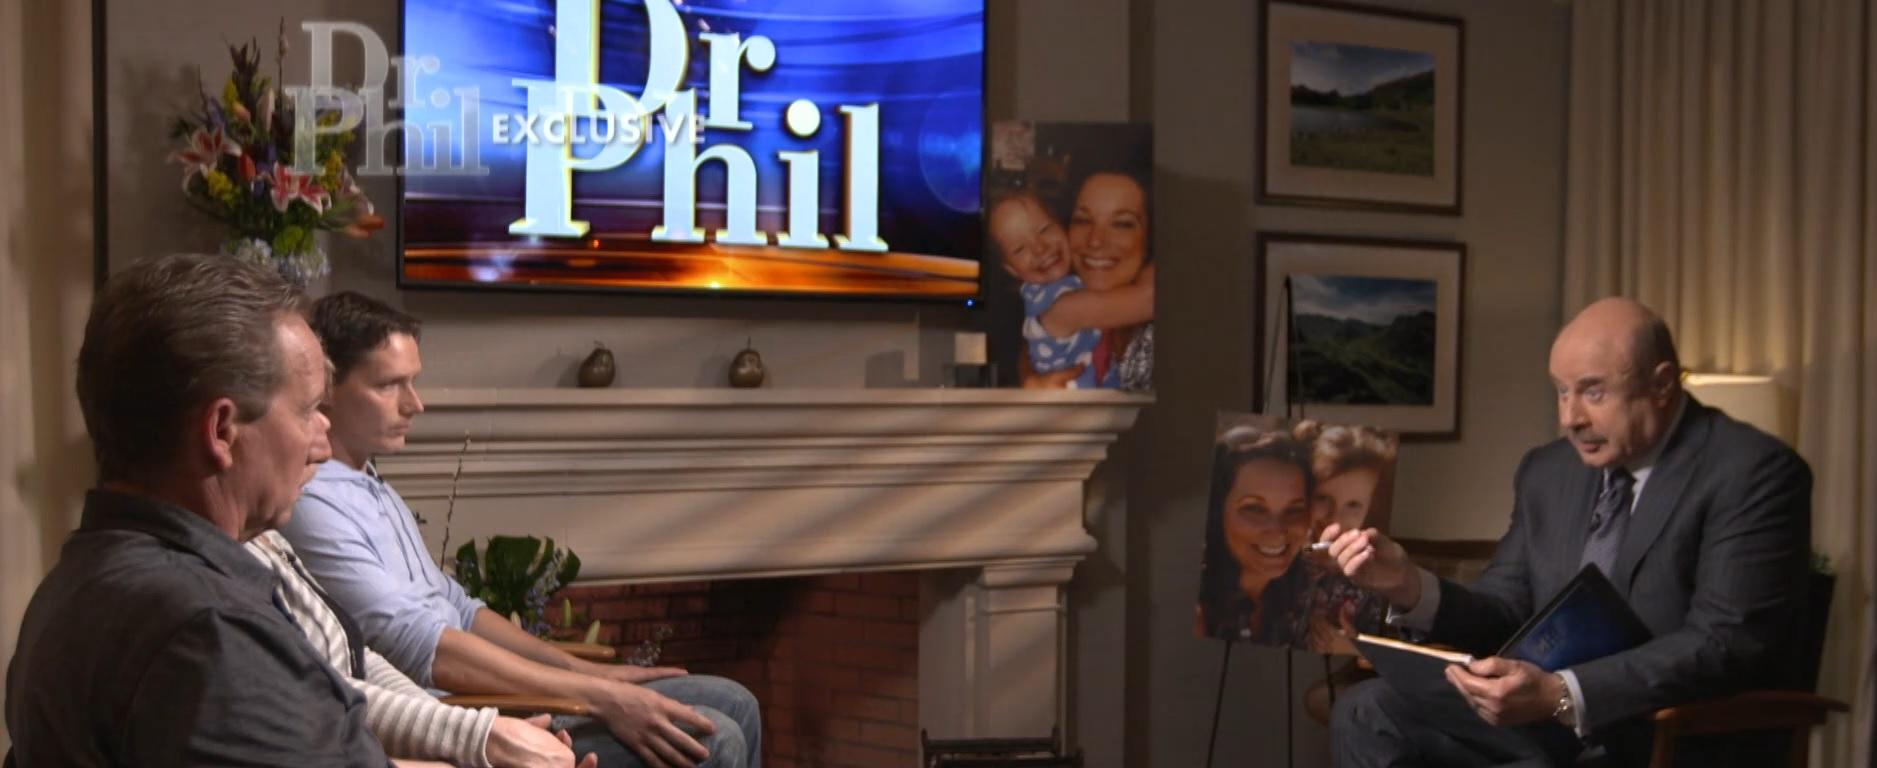 At 3 on WRAL: Dr  Phil interviews Shanann Watts' parents